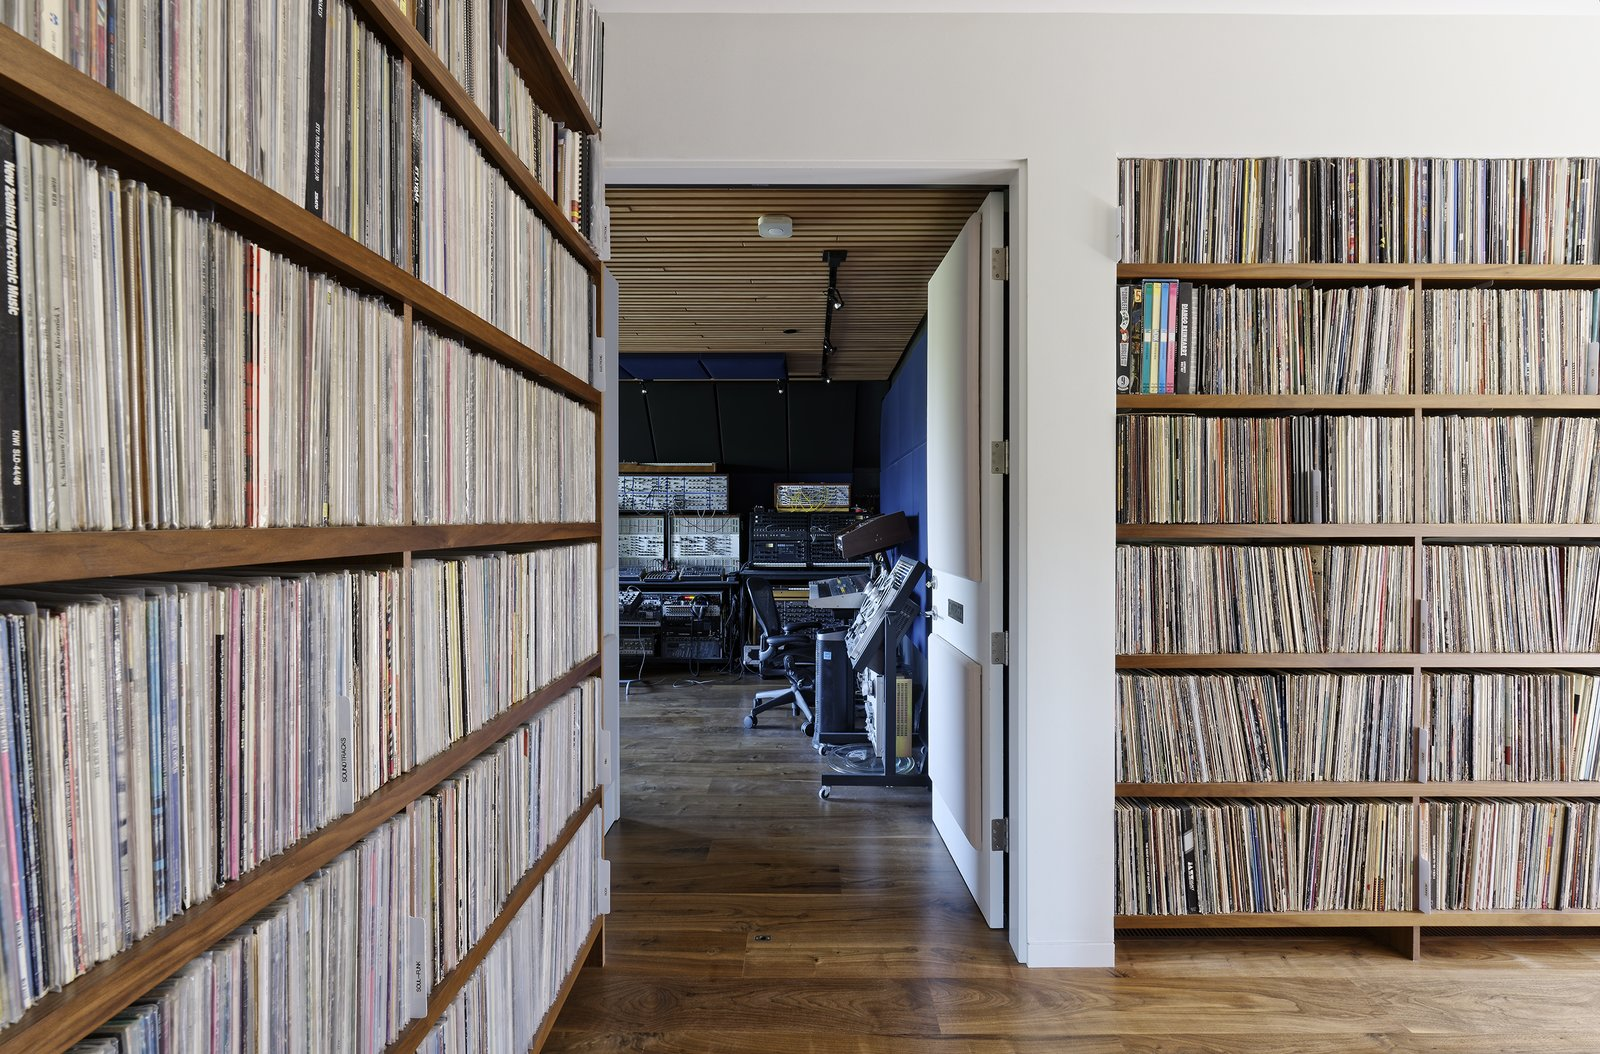 Downstairs are more shelves of records, the master and guest suites, and Jack's music studio. Tagged: Storage Room and Shelves Storage Type. Moving Mountains - Photo 13 of 15